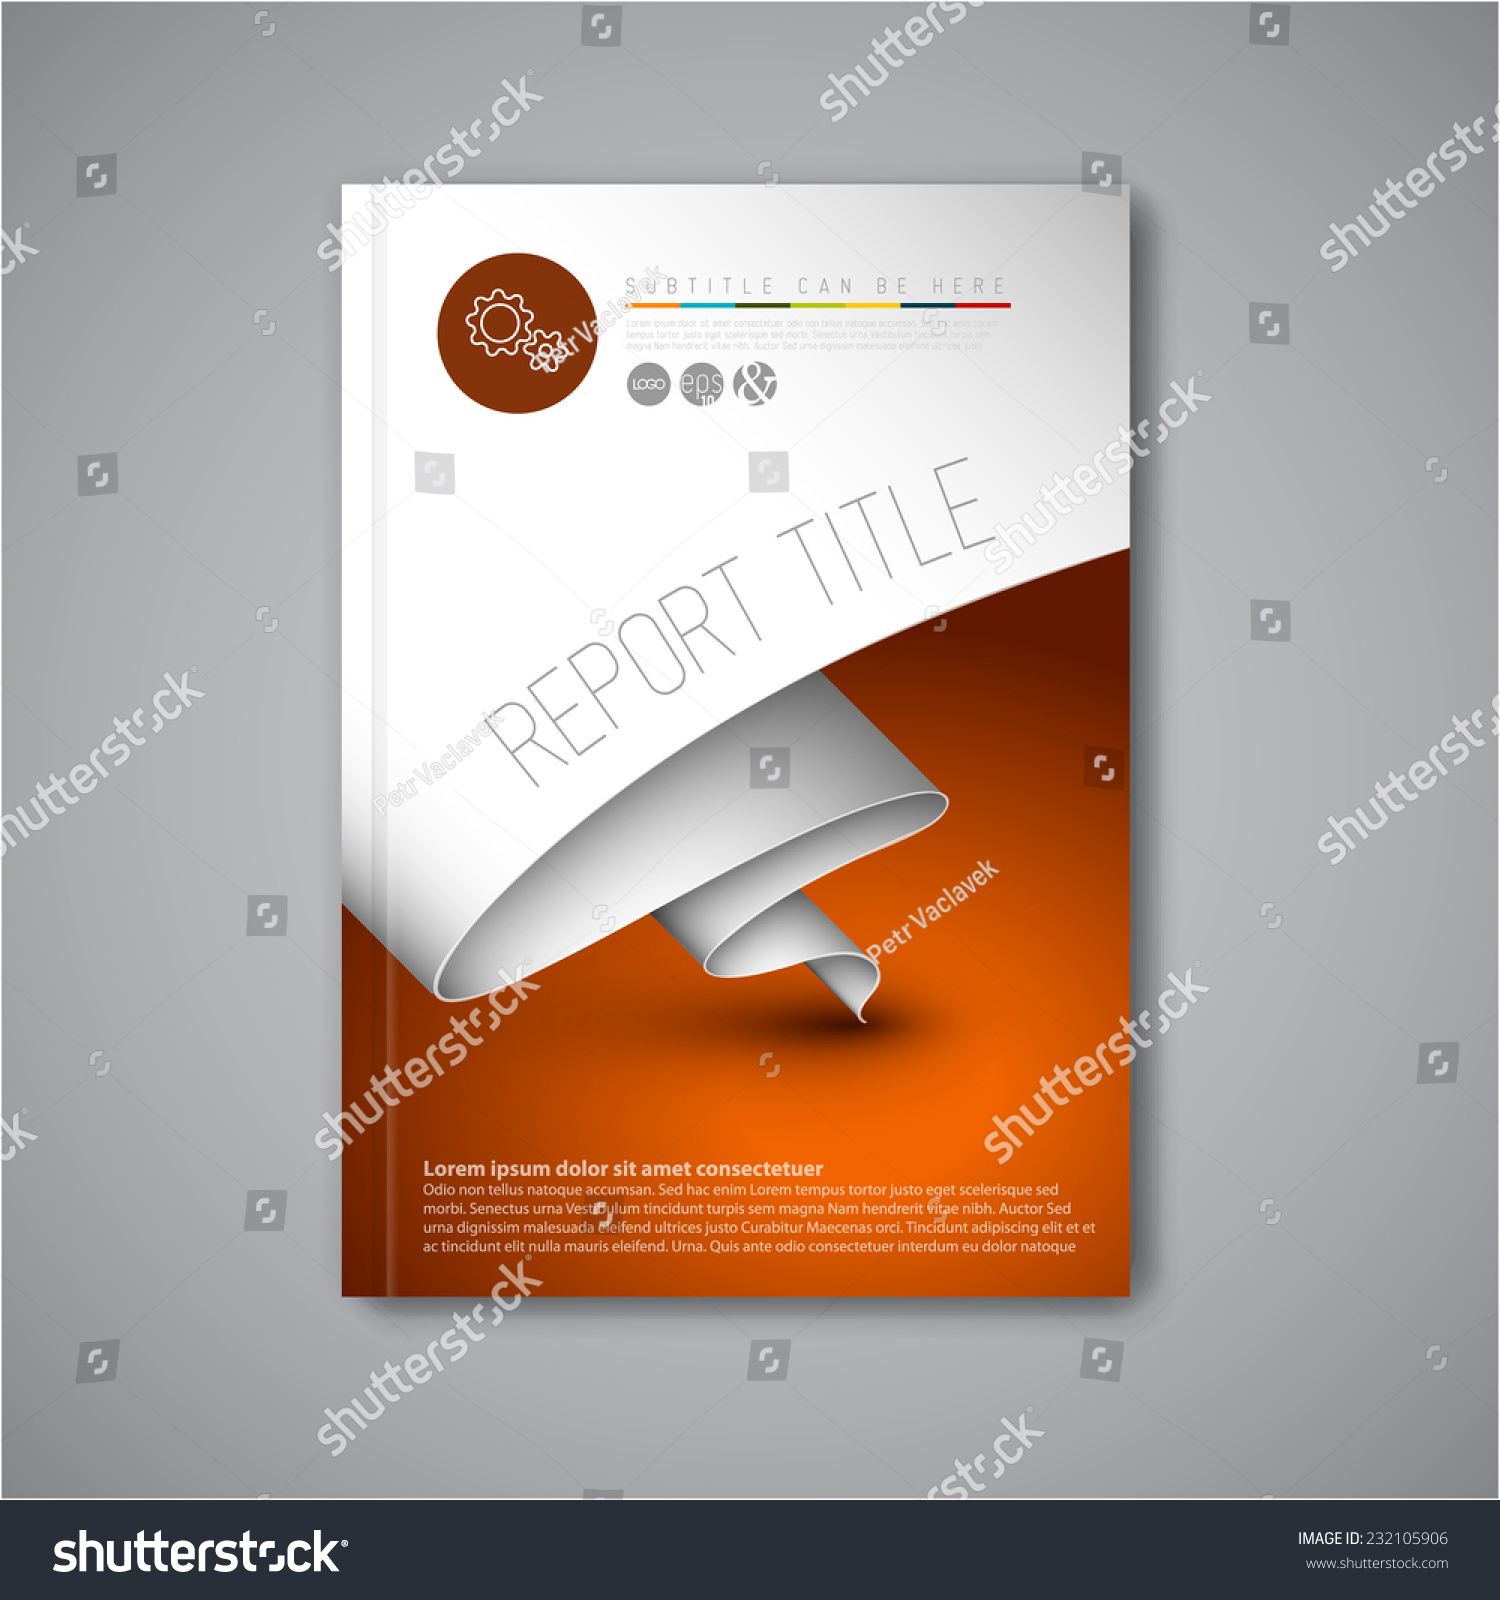 flyer samples templates paralegal resume objective examples tig modern vector abstract brochure book flyer stock vector 232105906 stock vector modern vector abstract brochure book flyer design template paper